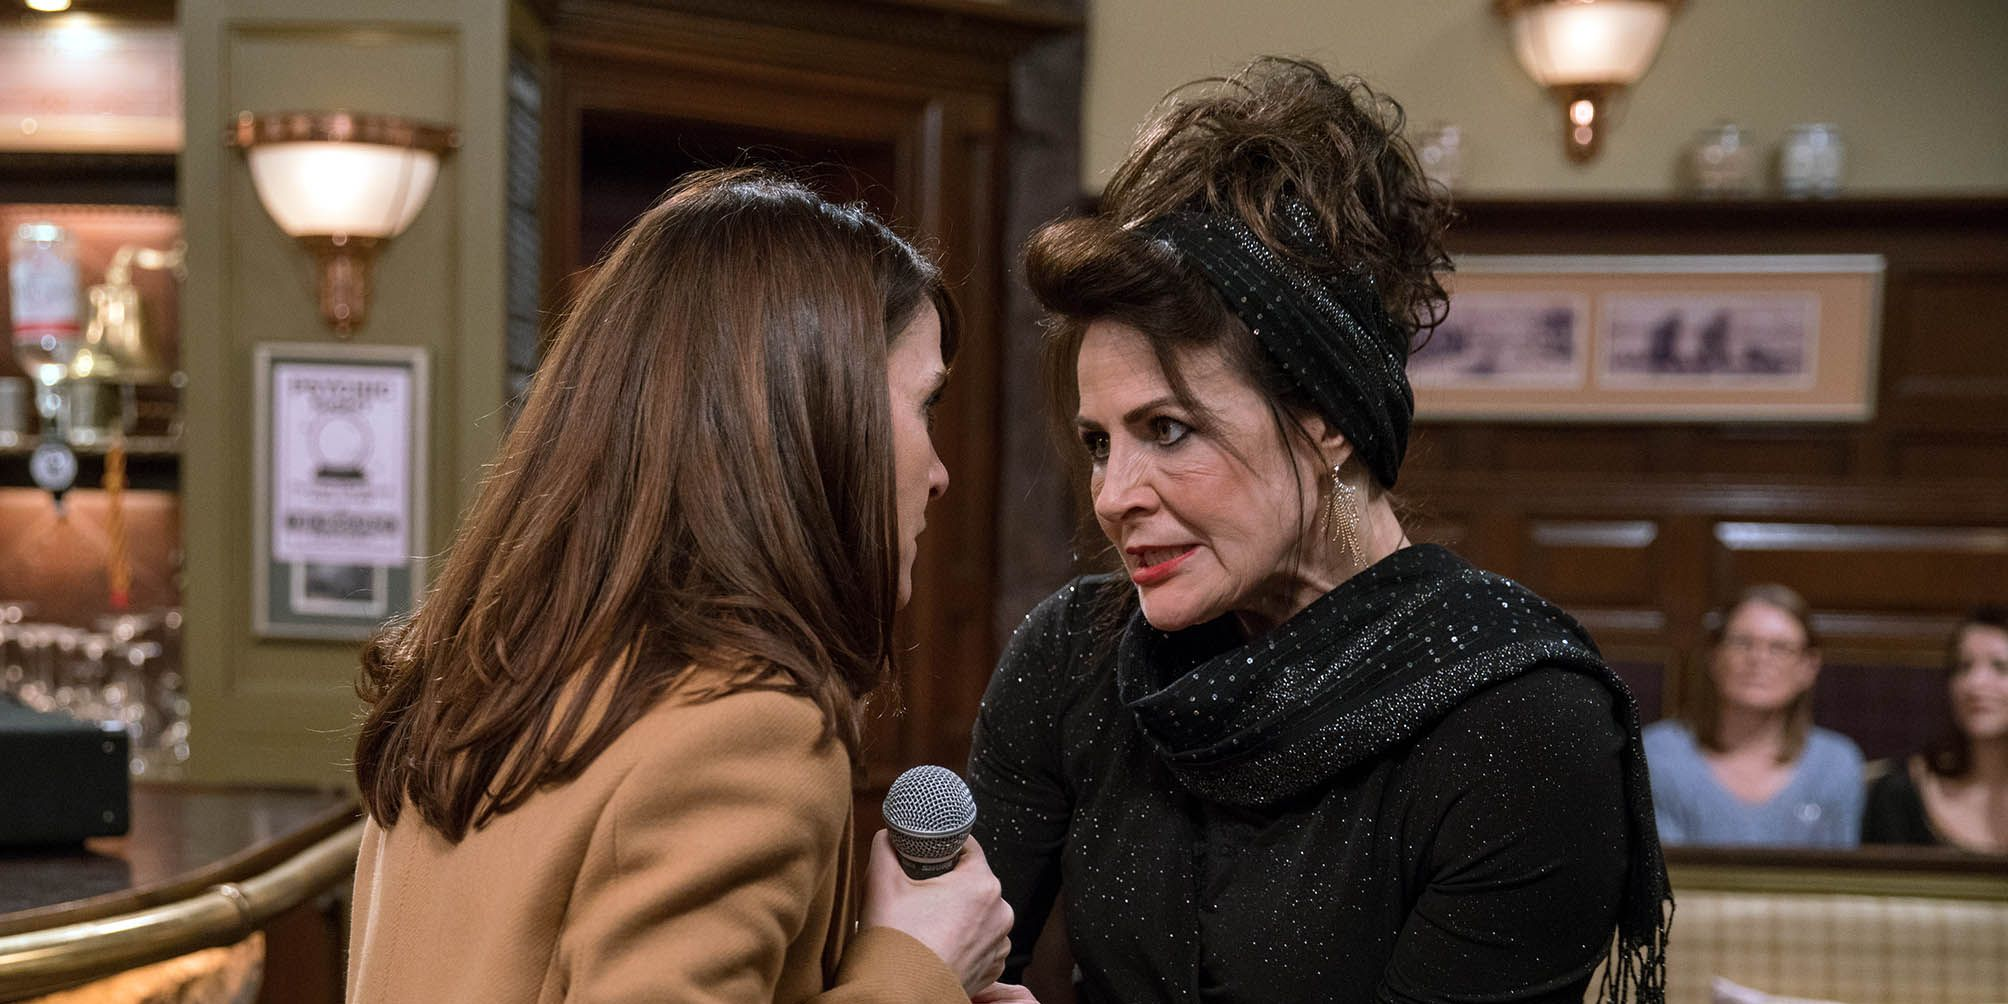 EMBARGO 14/3 Emma loses it as Faith's pyschic night in Emmerdale